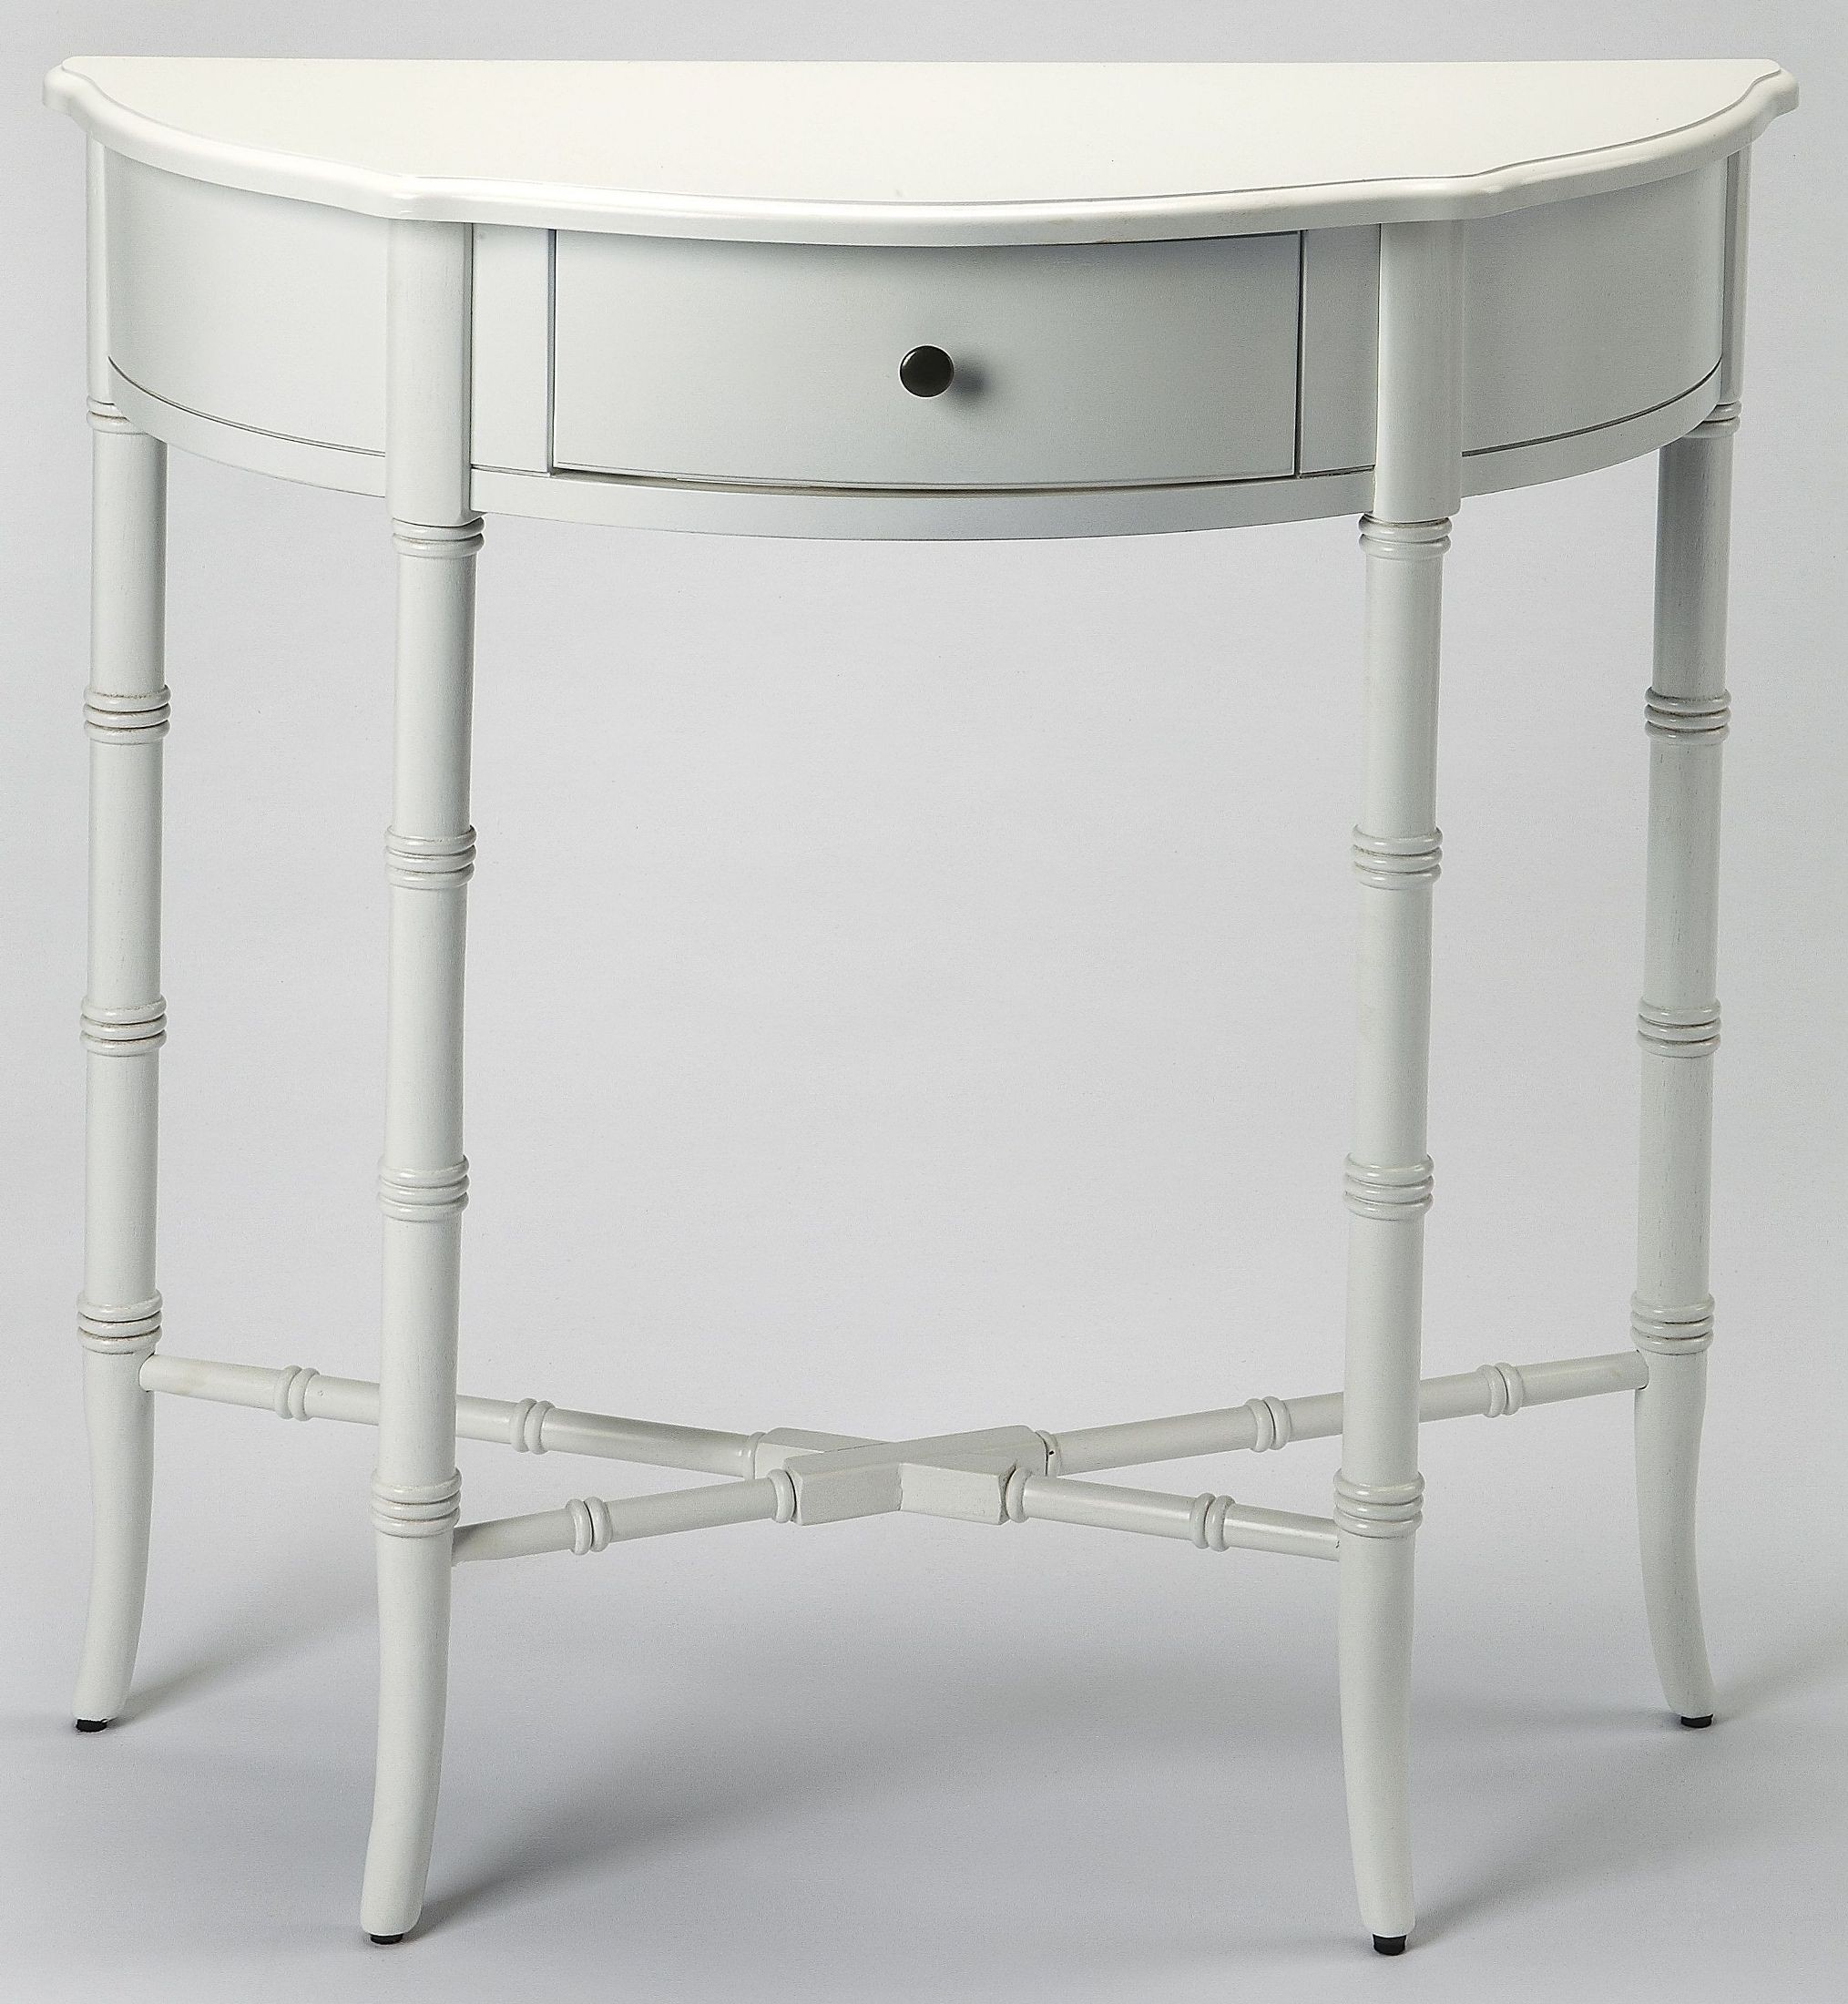 Skilling white demilune console table from butler coleman furniture - White demilune console table ...